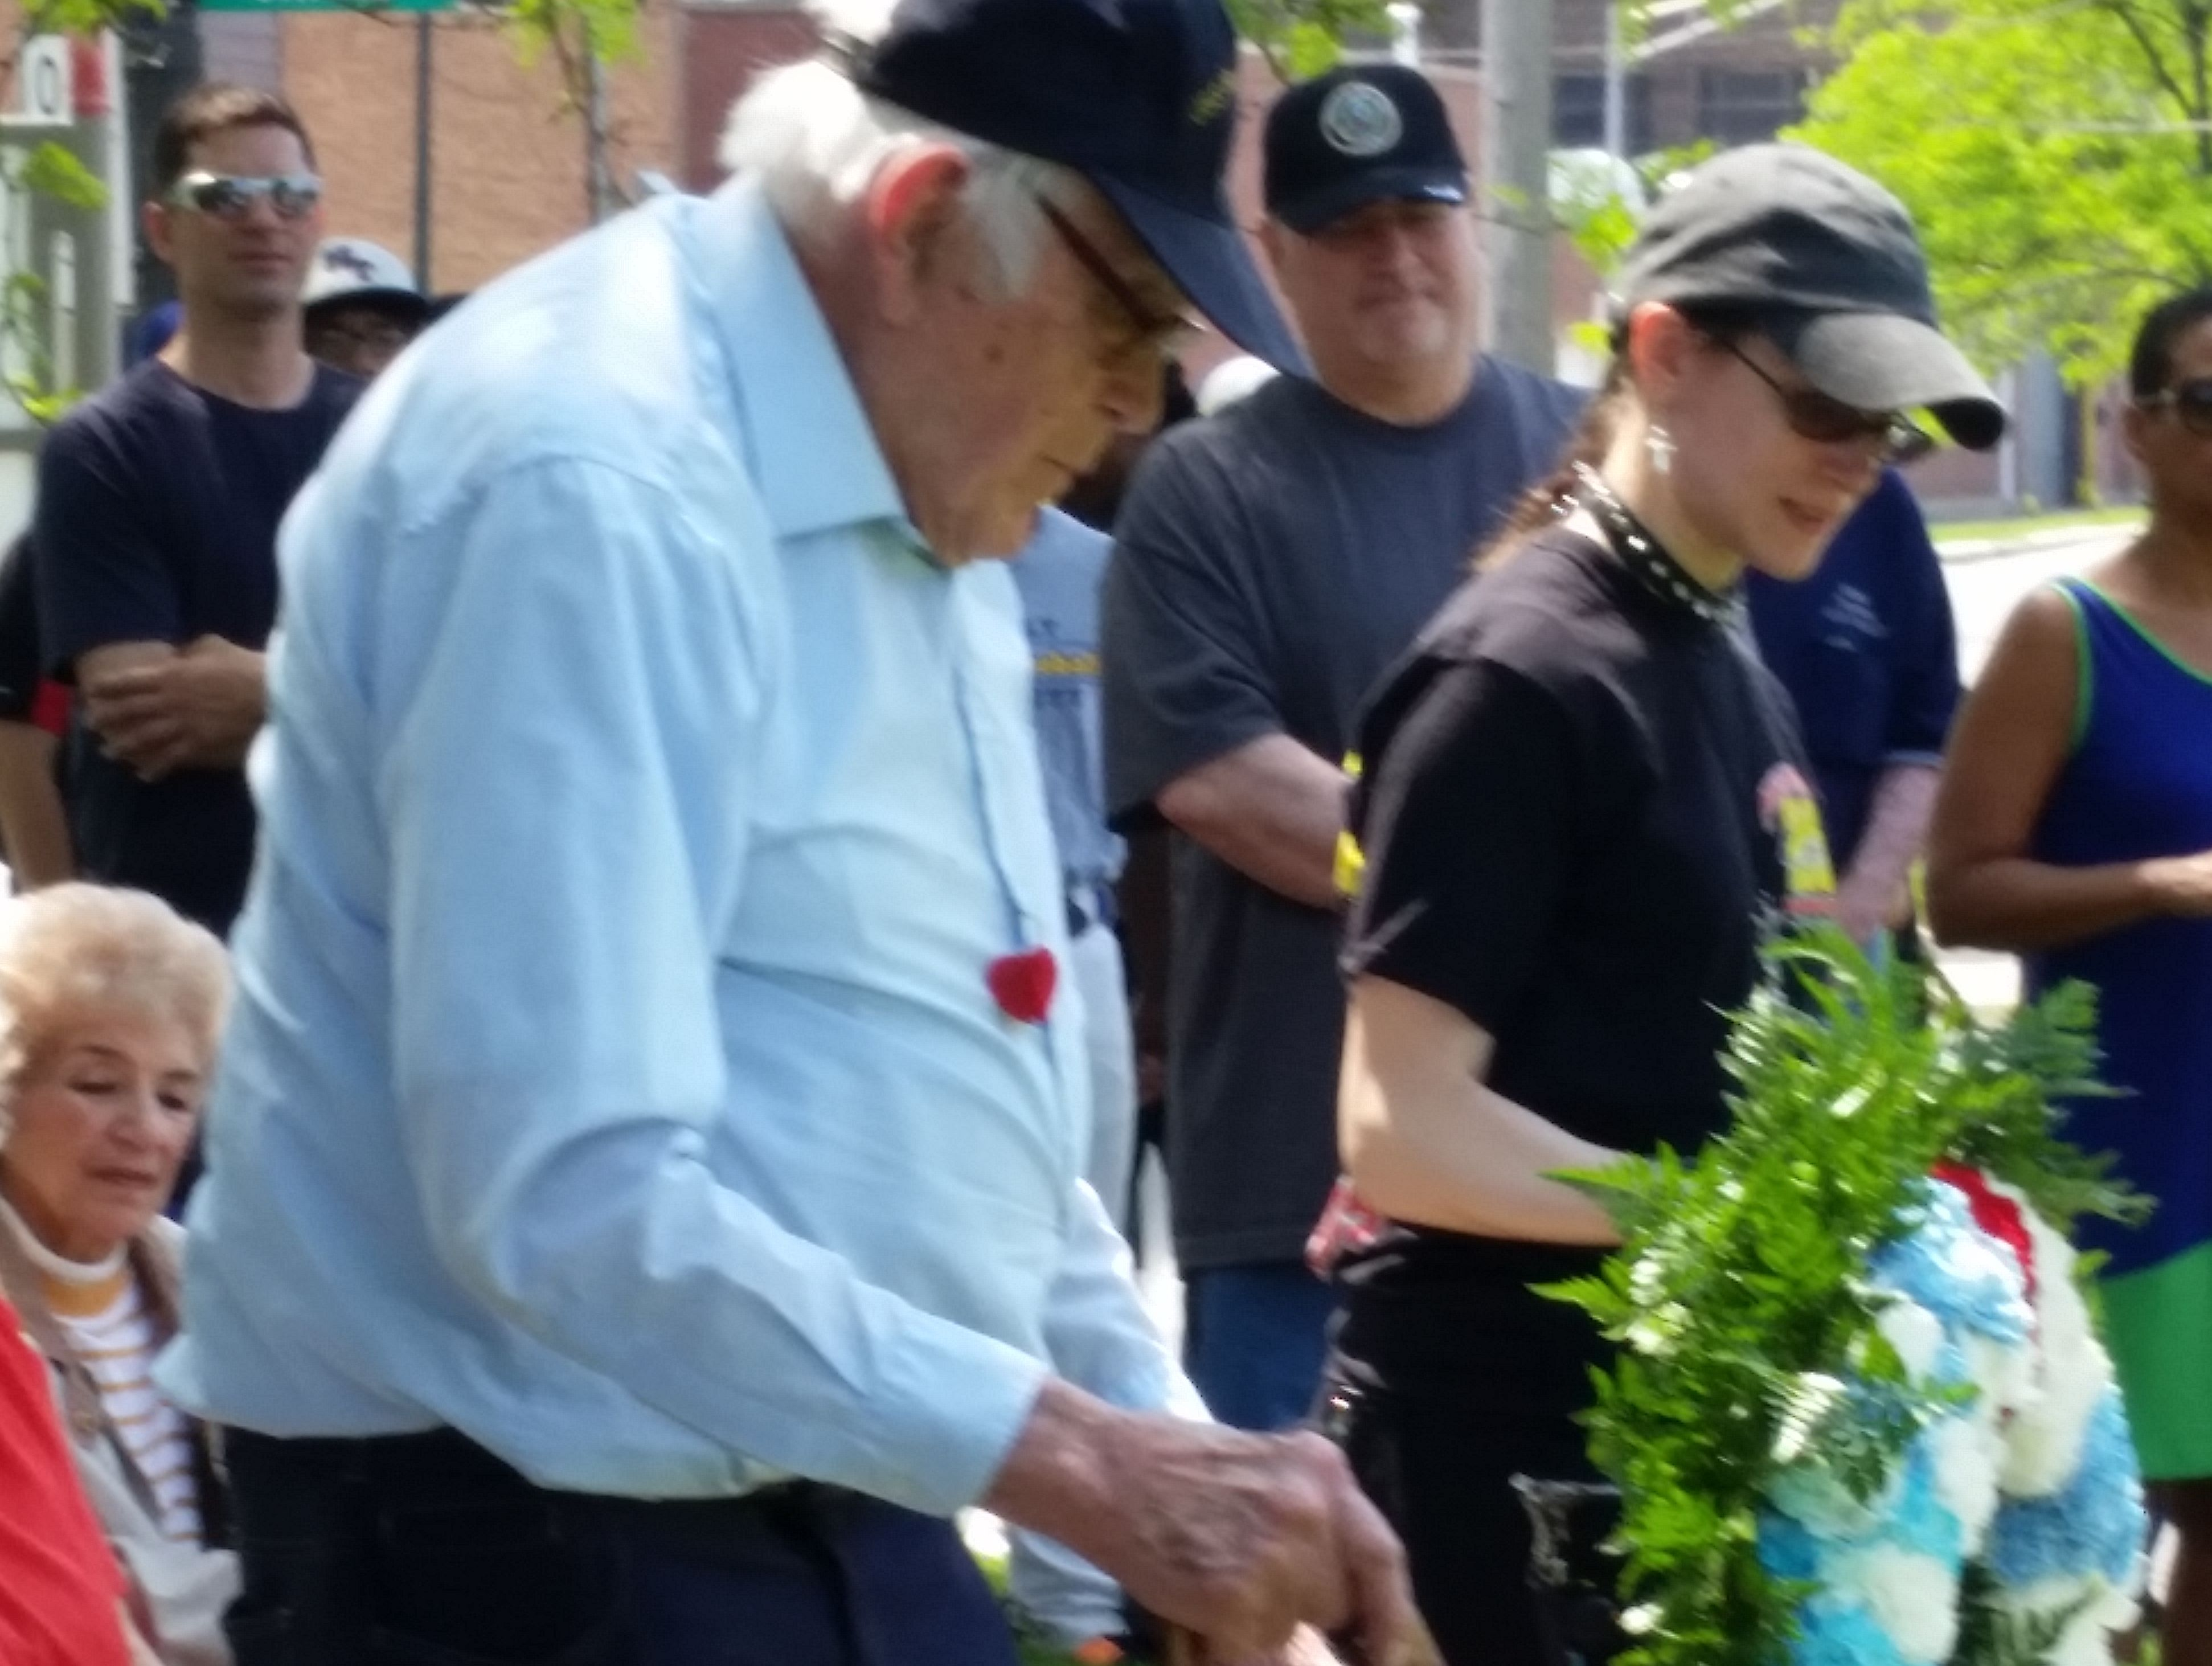 The Smith Park Advisory Council and the Smith Park Neighborhood Alliance participated in the Memorial Day celebration at Smith Park. WWII Vet Mr. Miller and his granddaugter Elizabeth presented the wreath at the army tank.